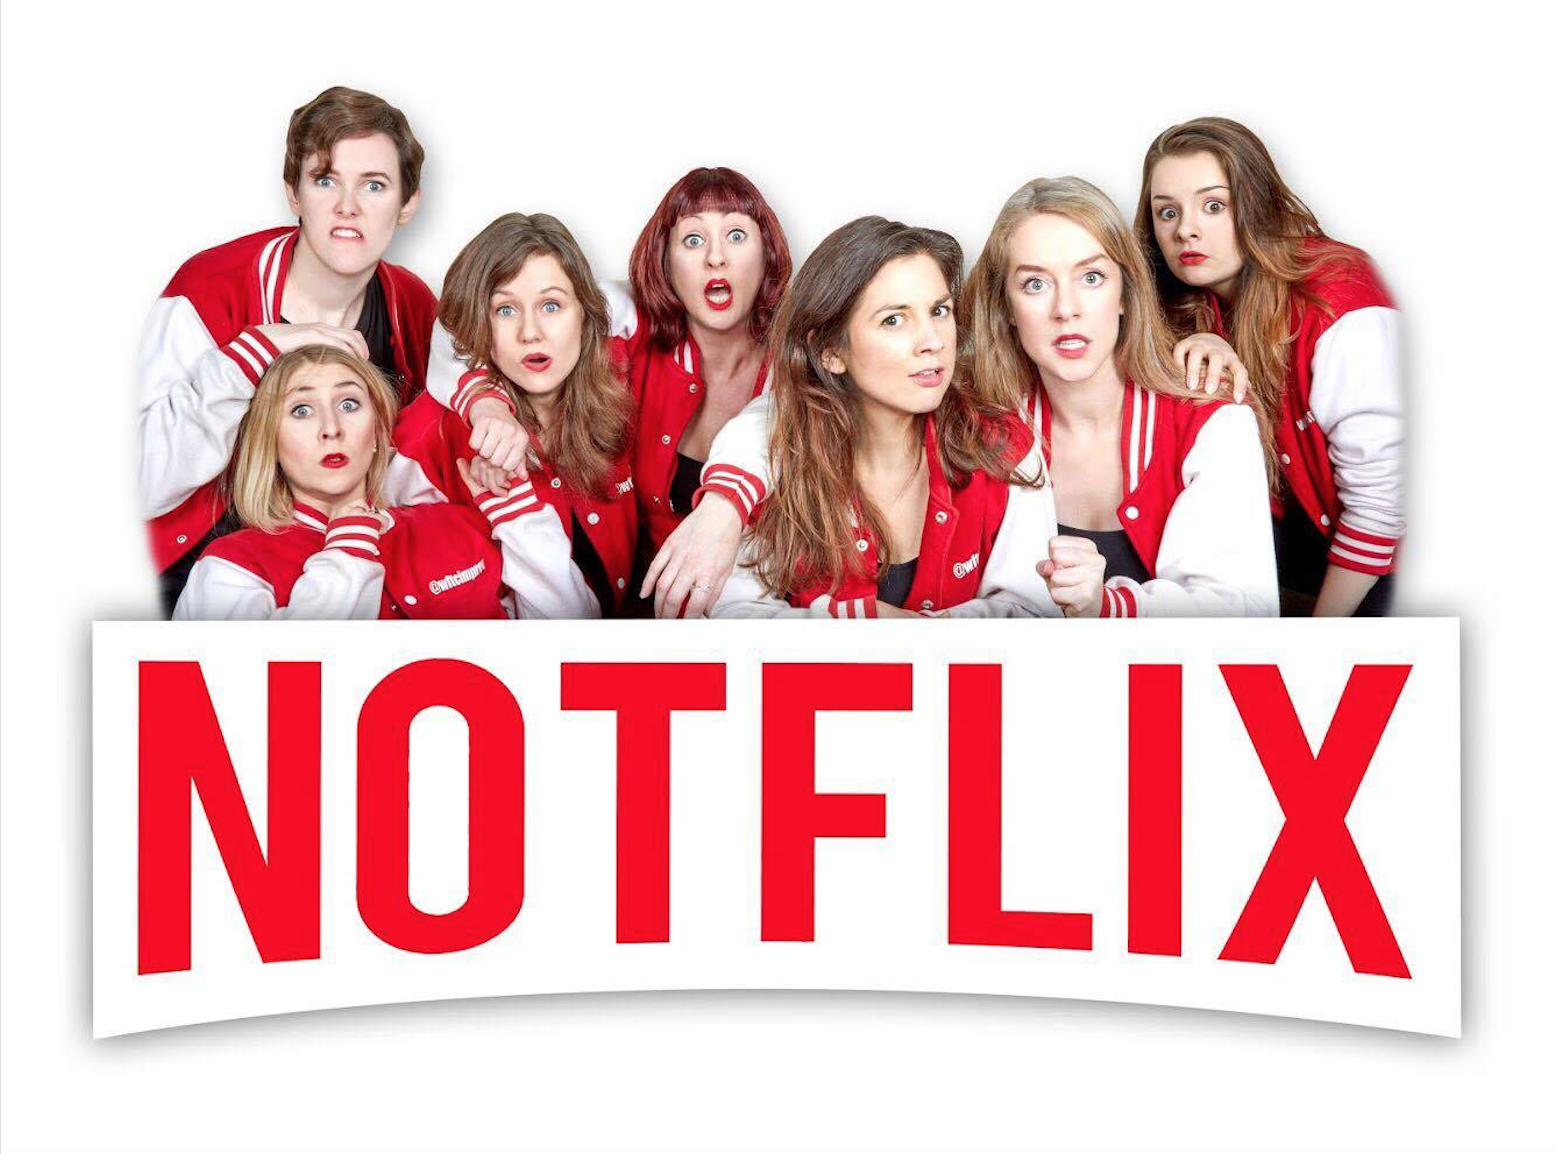 notflix-the-improvised-musical-returns-to-vault-festival-in-march